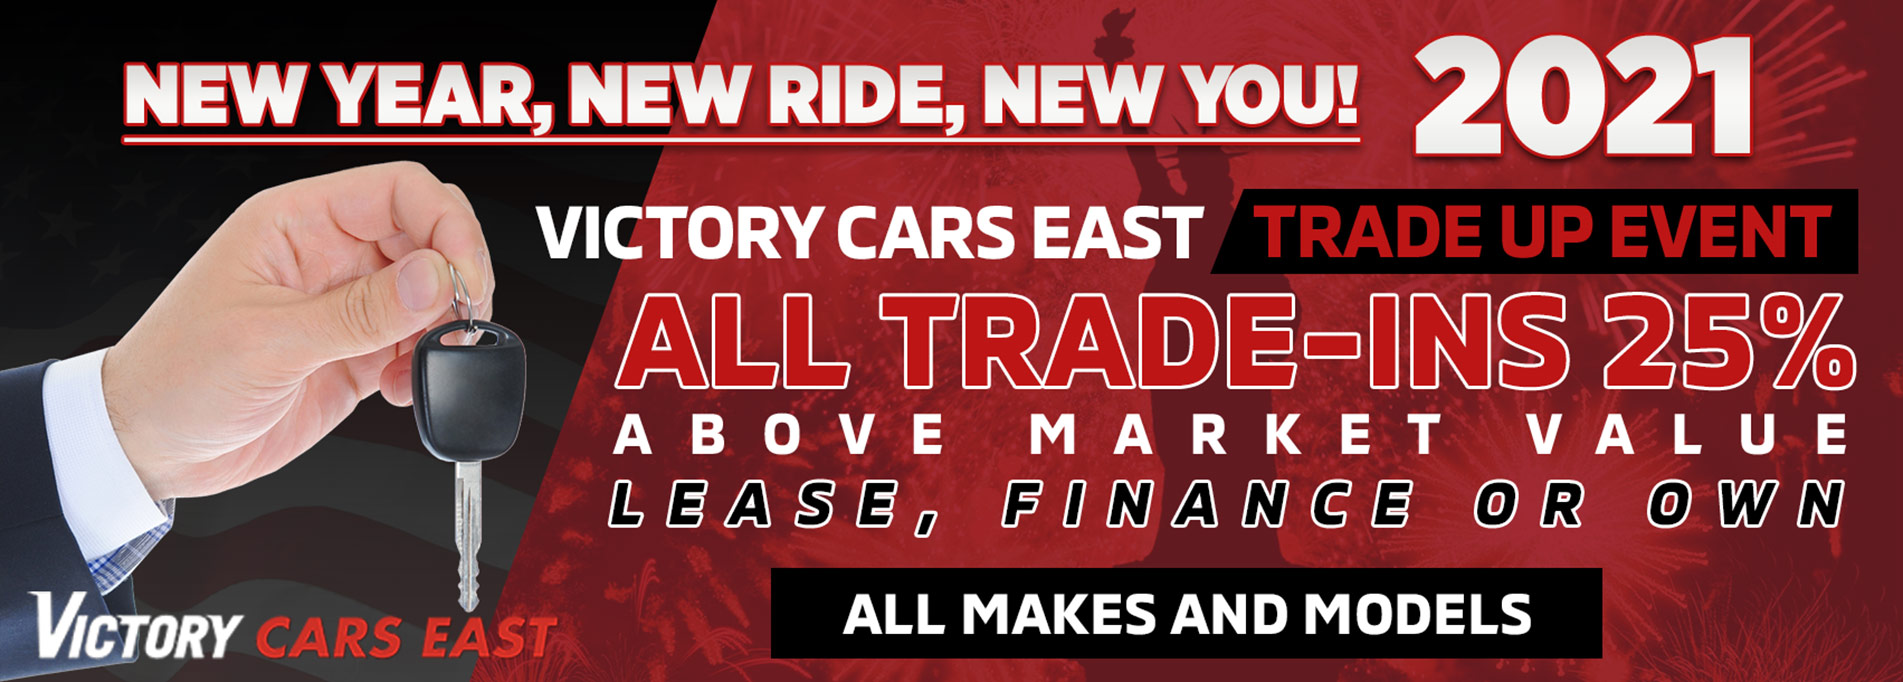 Used cars for sale in Huntington | Victory Cars East LLC. Huntington New York